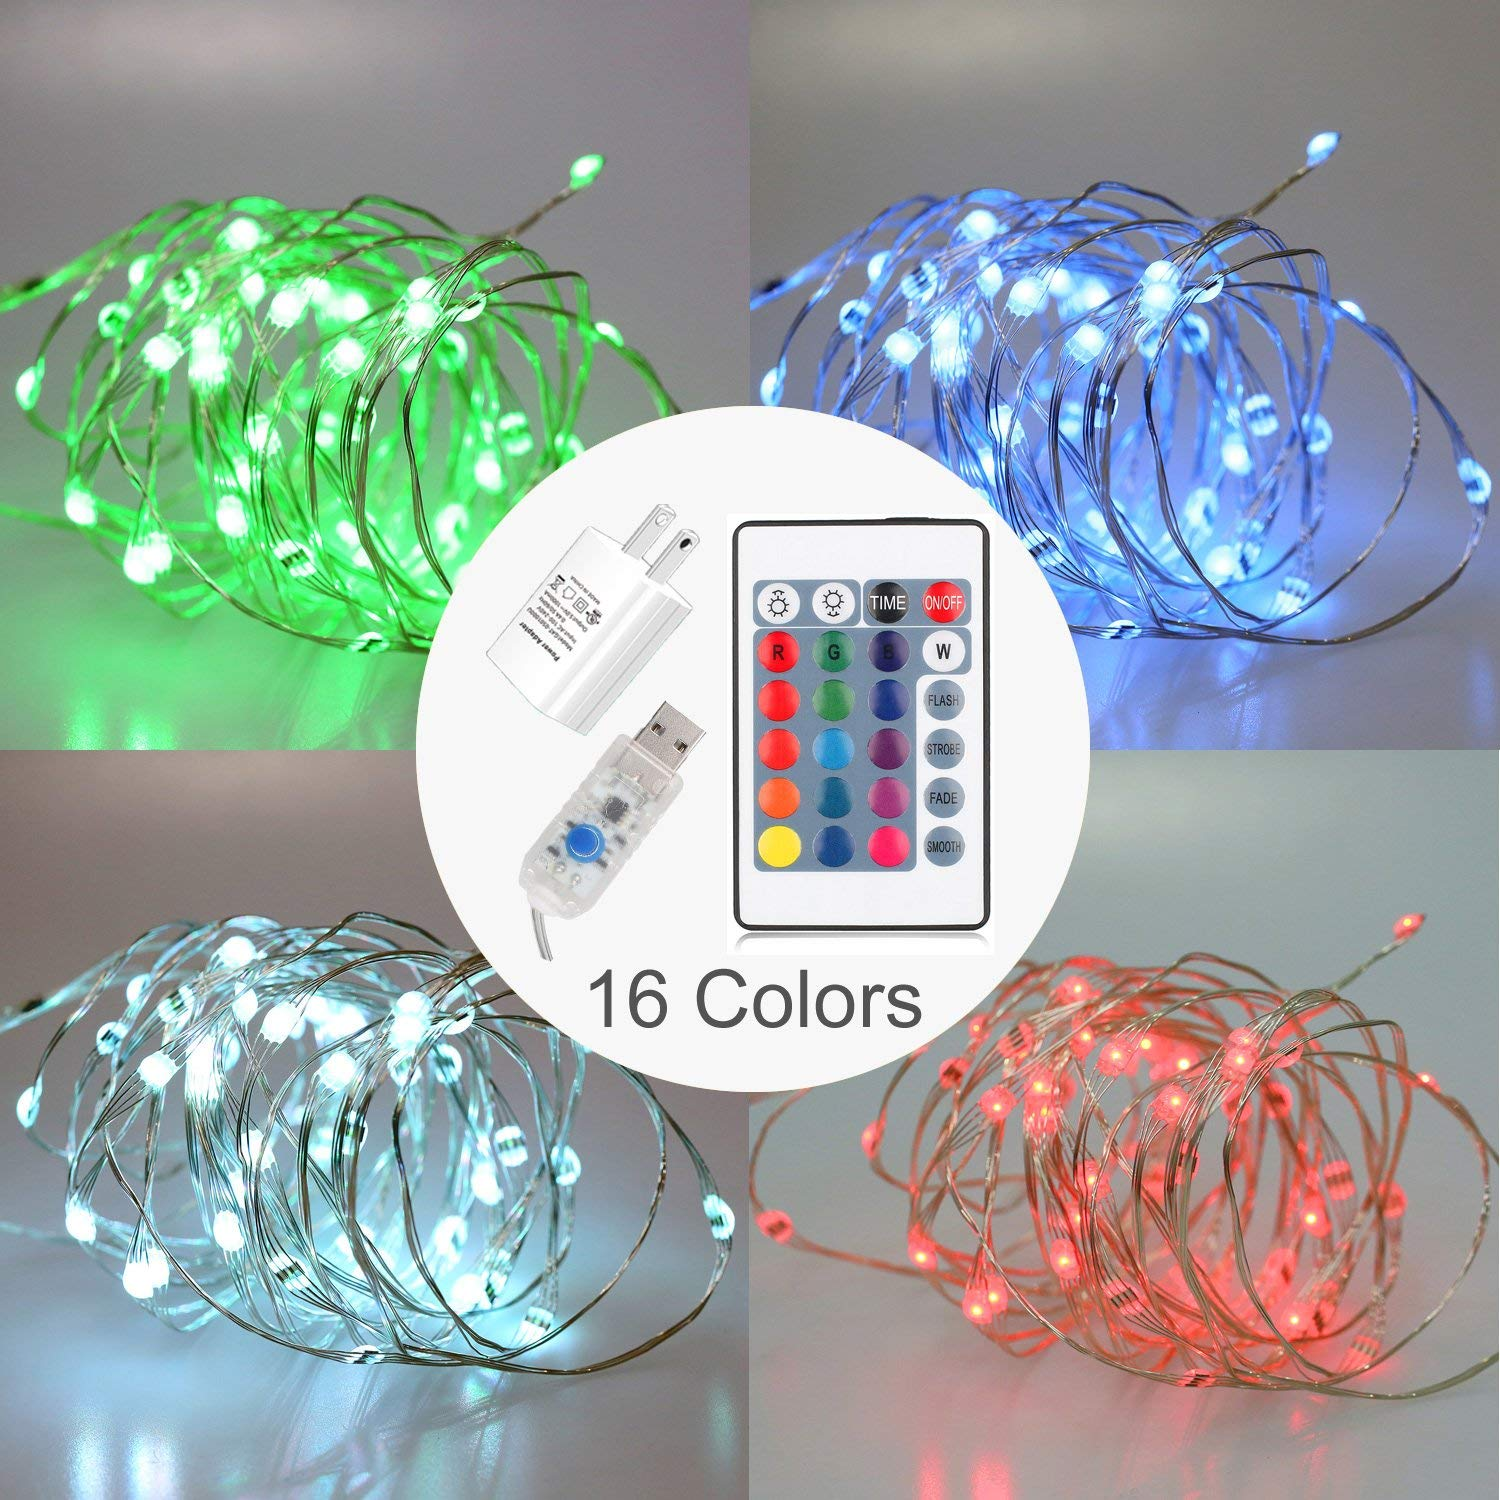 JOEONE LED String Lights USB AC Power - Timer Remote Control Dimmable, 16ft 50 LEDs Multi Color Copper Wire for Christmas Decorative and Holiday Decor